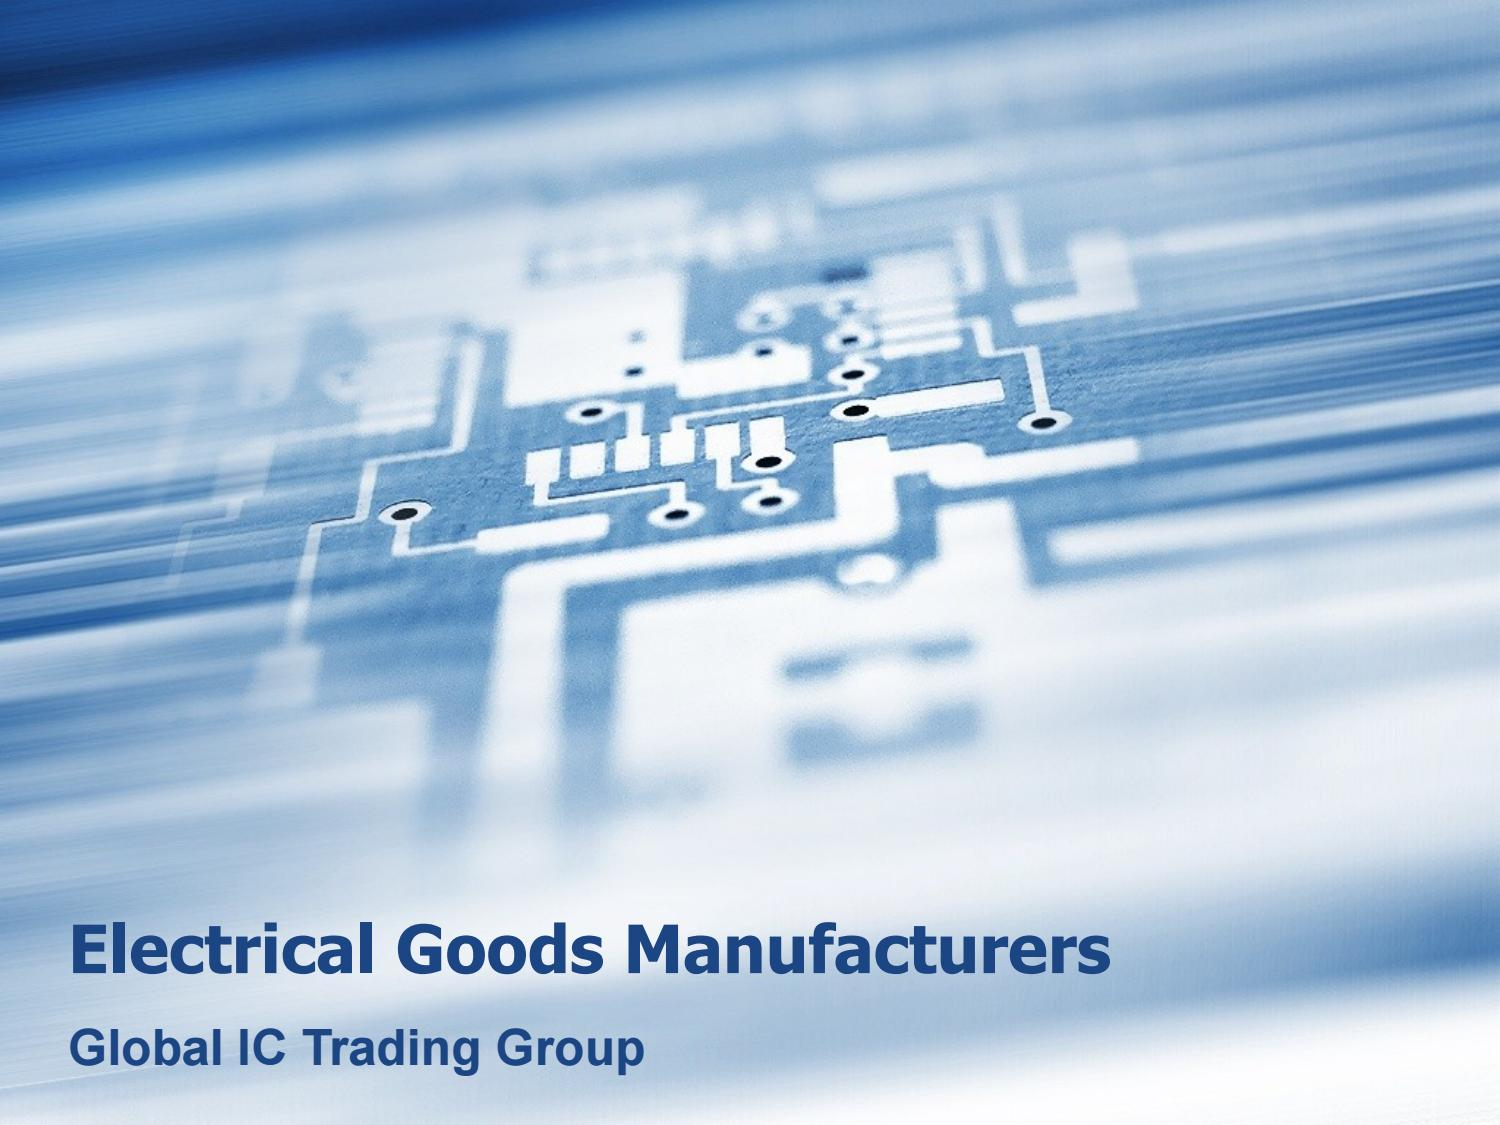 Electrical Goods Manufacturers- Global IC Trading Group